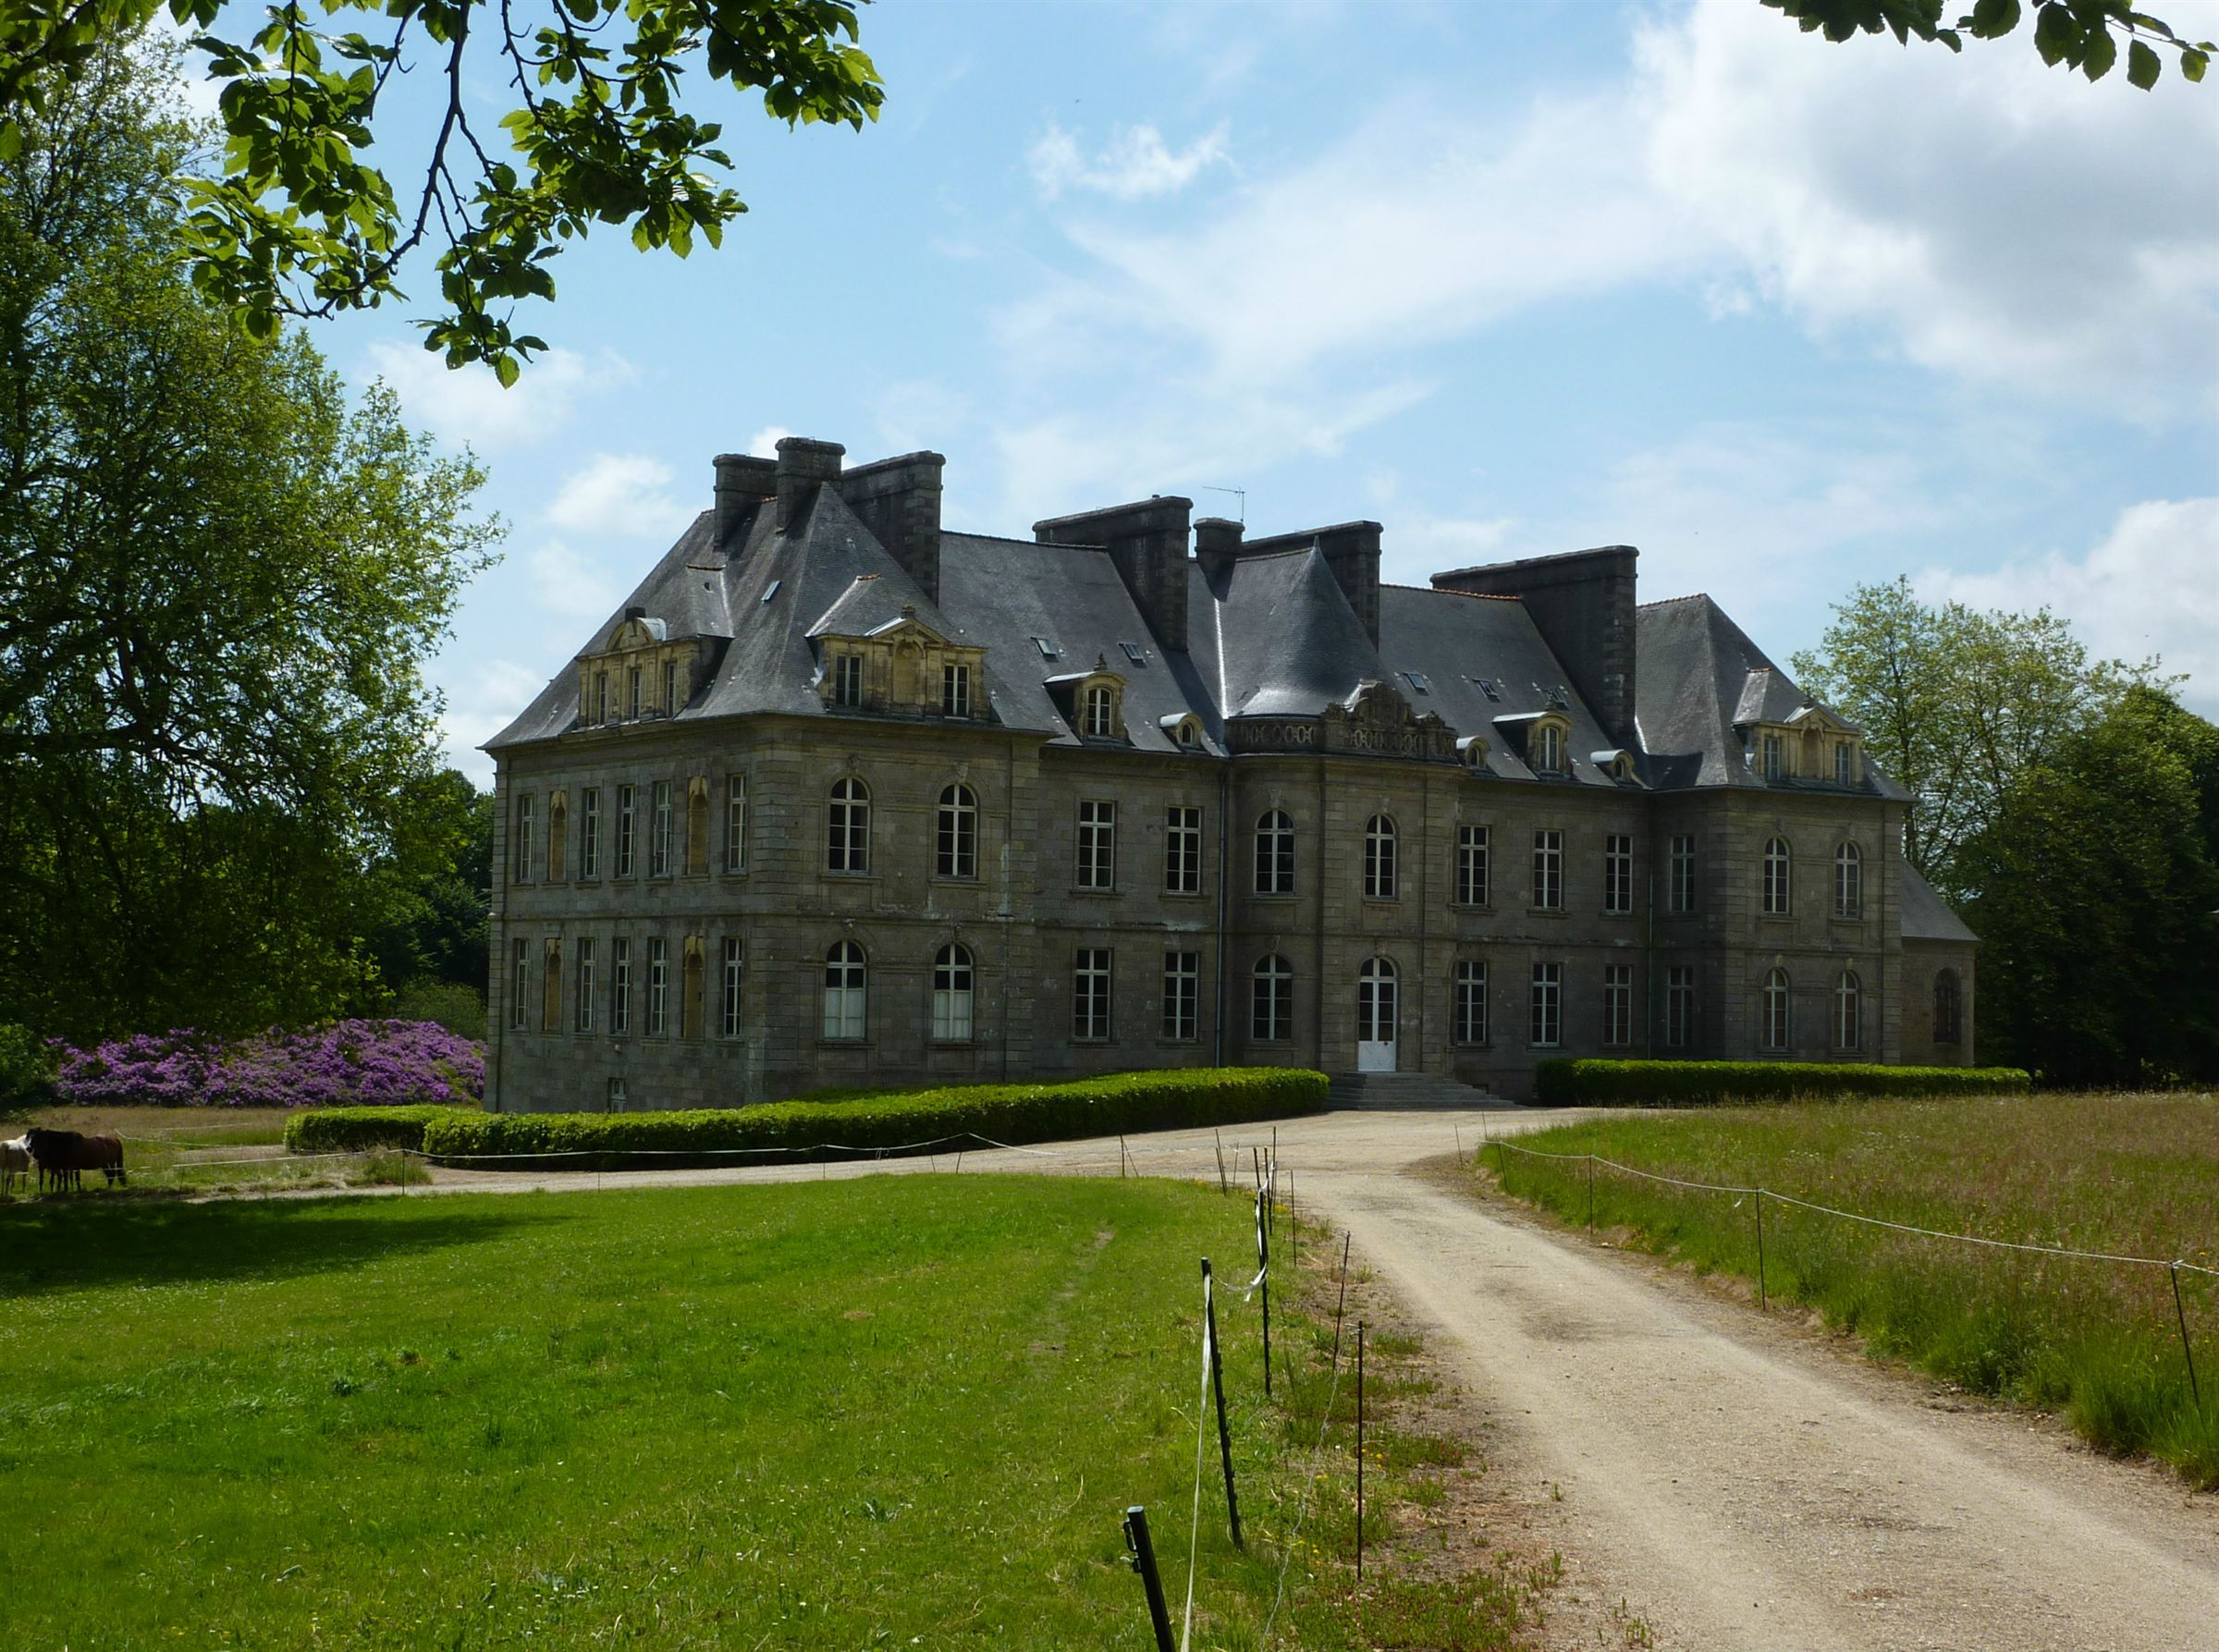 Property For Sale at Listed 18th century Castle for sale in Brittany set on 125 hectares